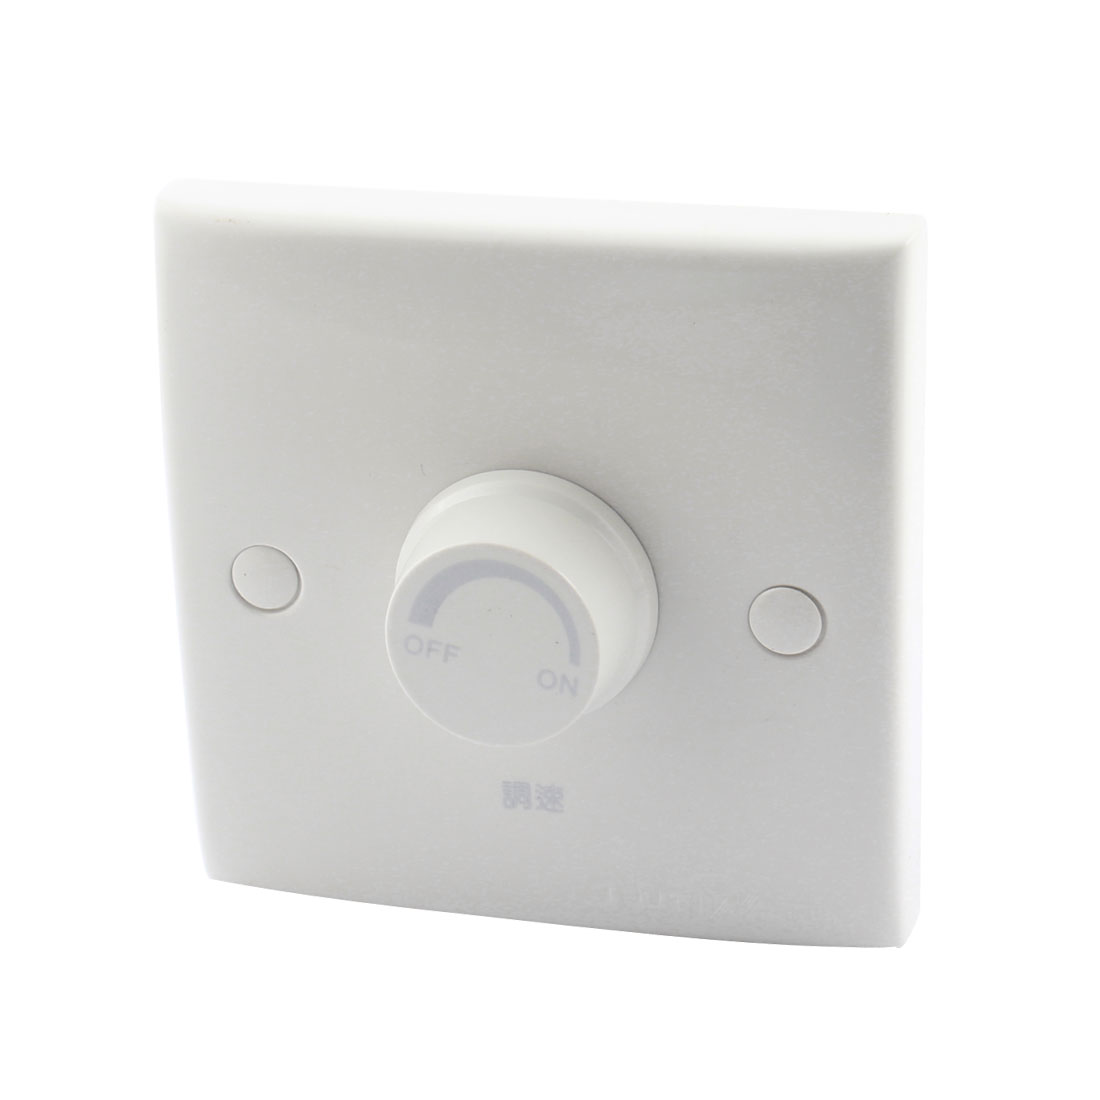 AC 200V-250V 150W 2 Screw Terminal Wall Panel Mount ON/OFF Rotary Knob White Plastic Shell Fan Speed Control Switch